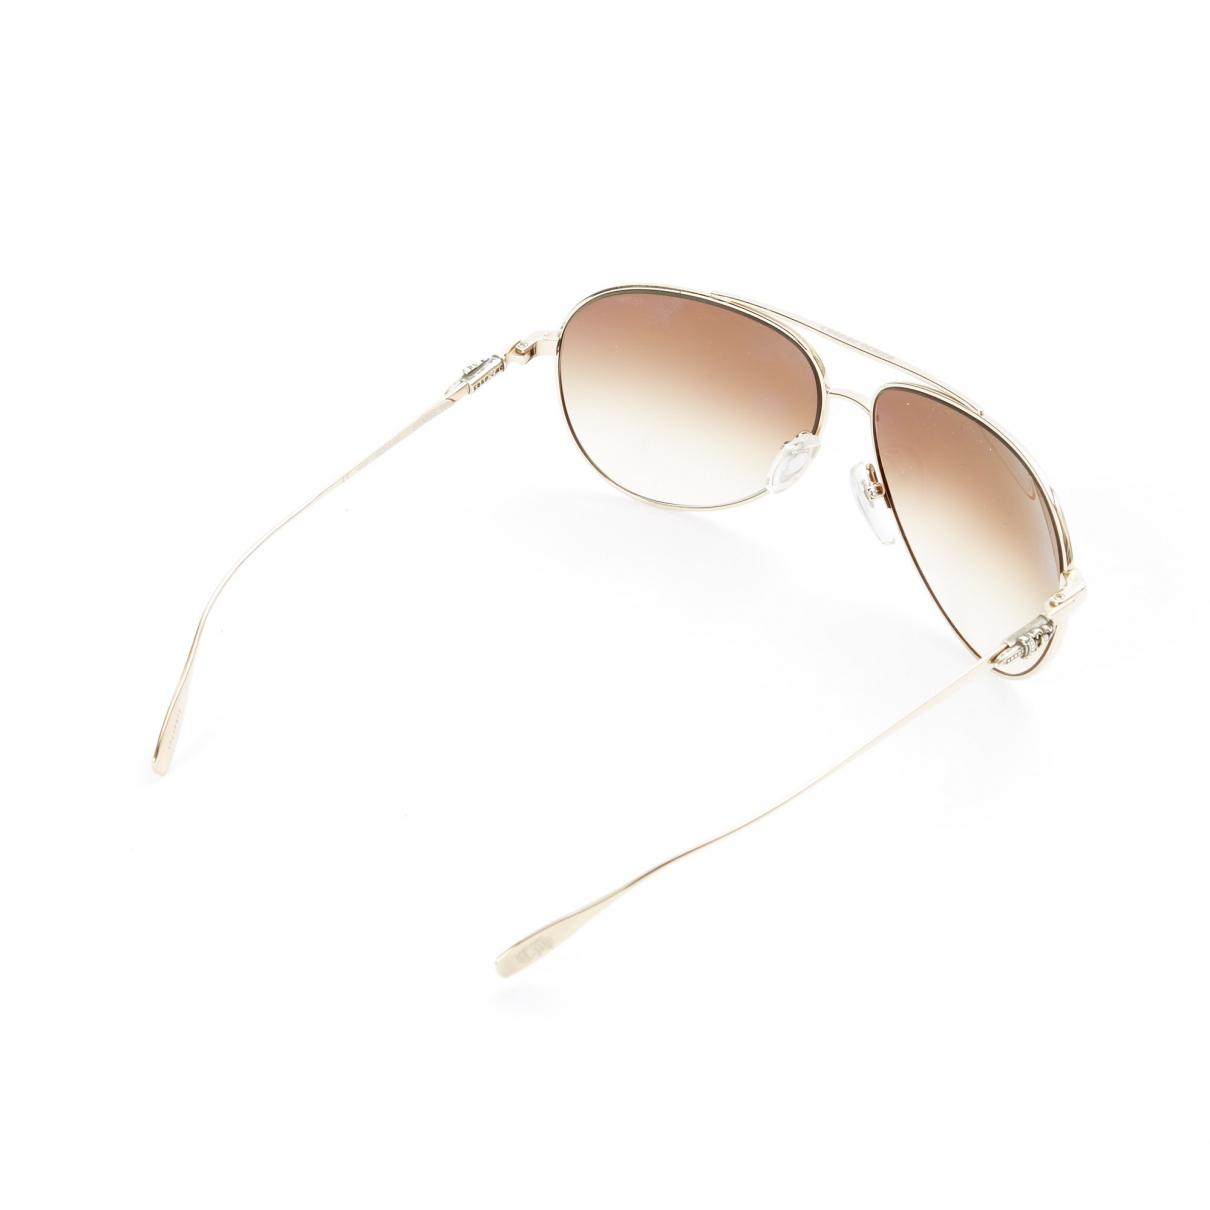 Chrome Hearts Synthetic Pre-owned Aviator Sunglasses in Silver (Metallic)